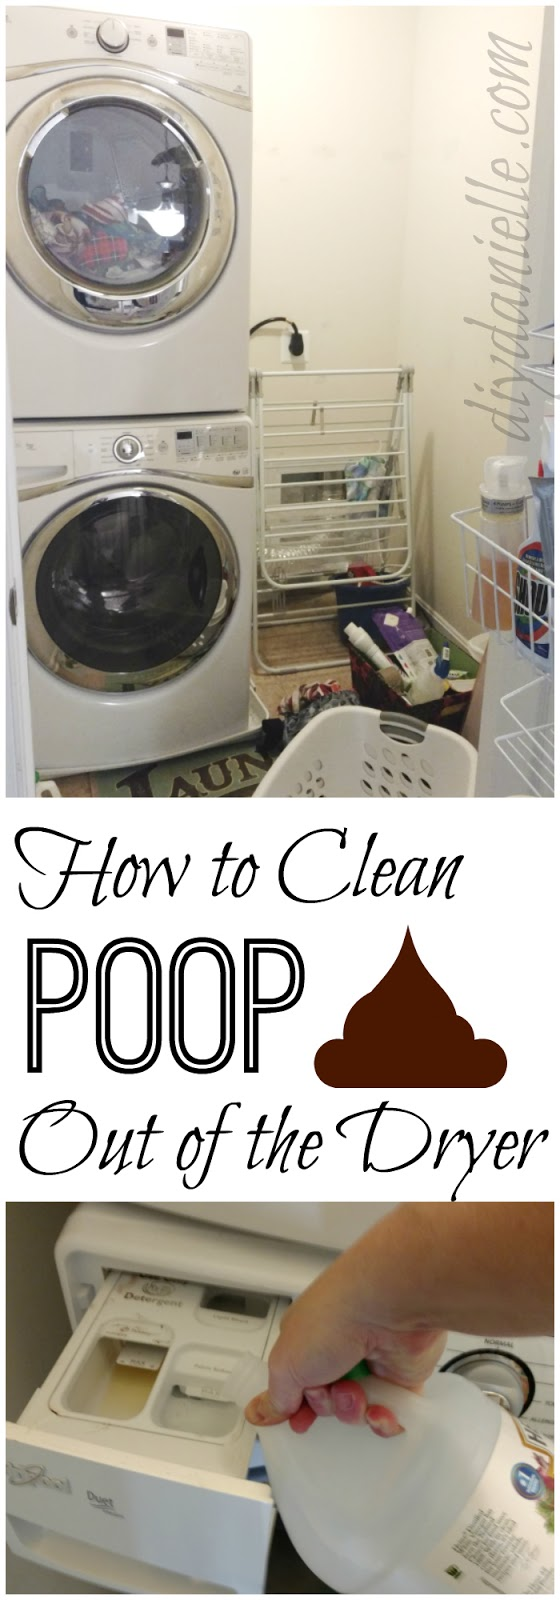 How to clean poop out of the dryer and washing machine.